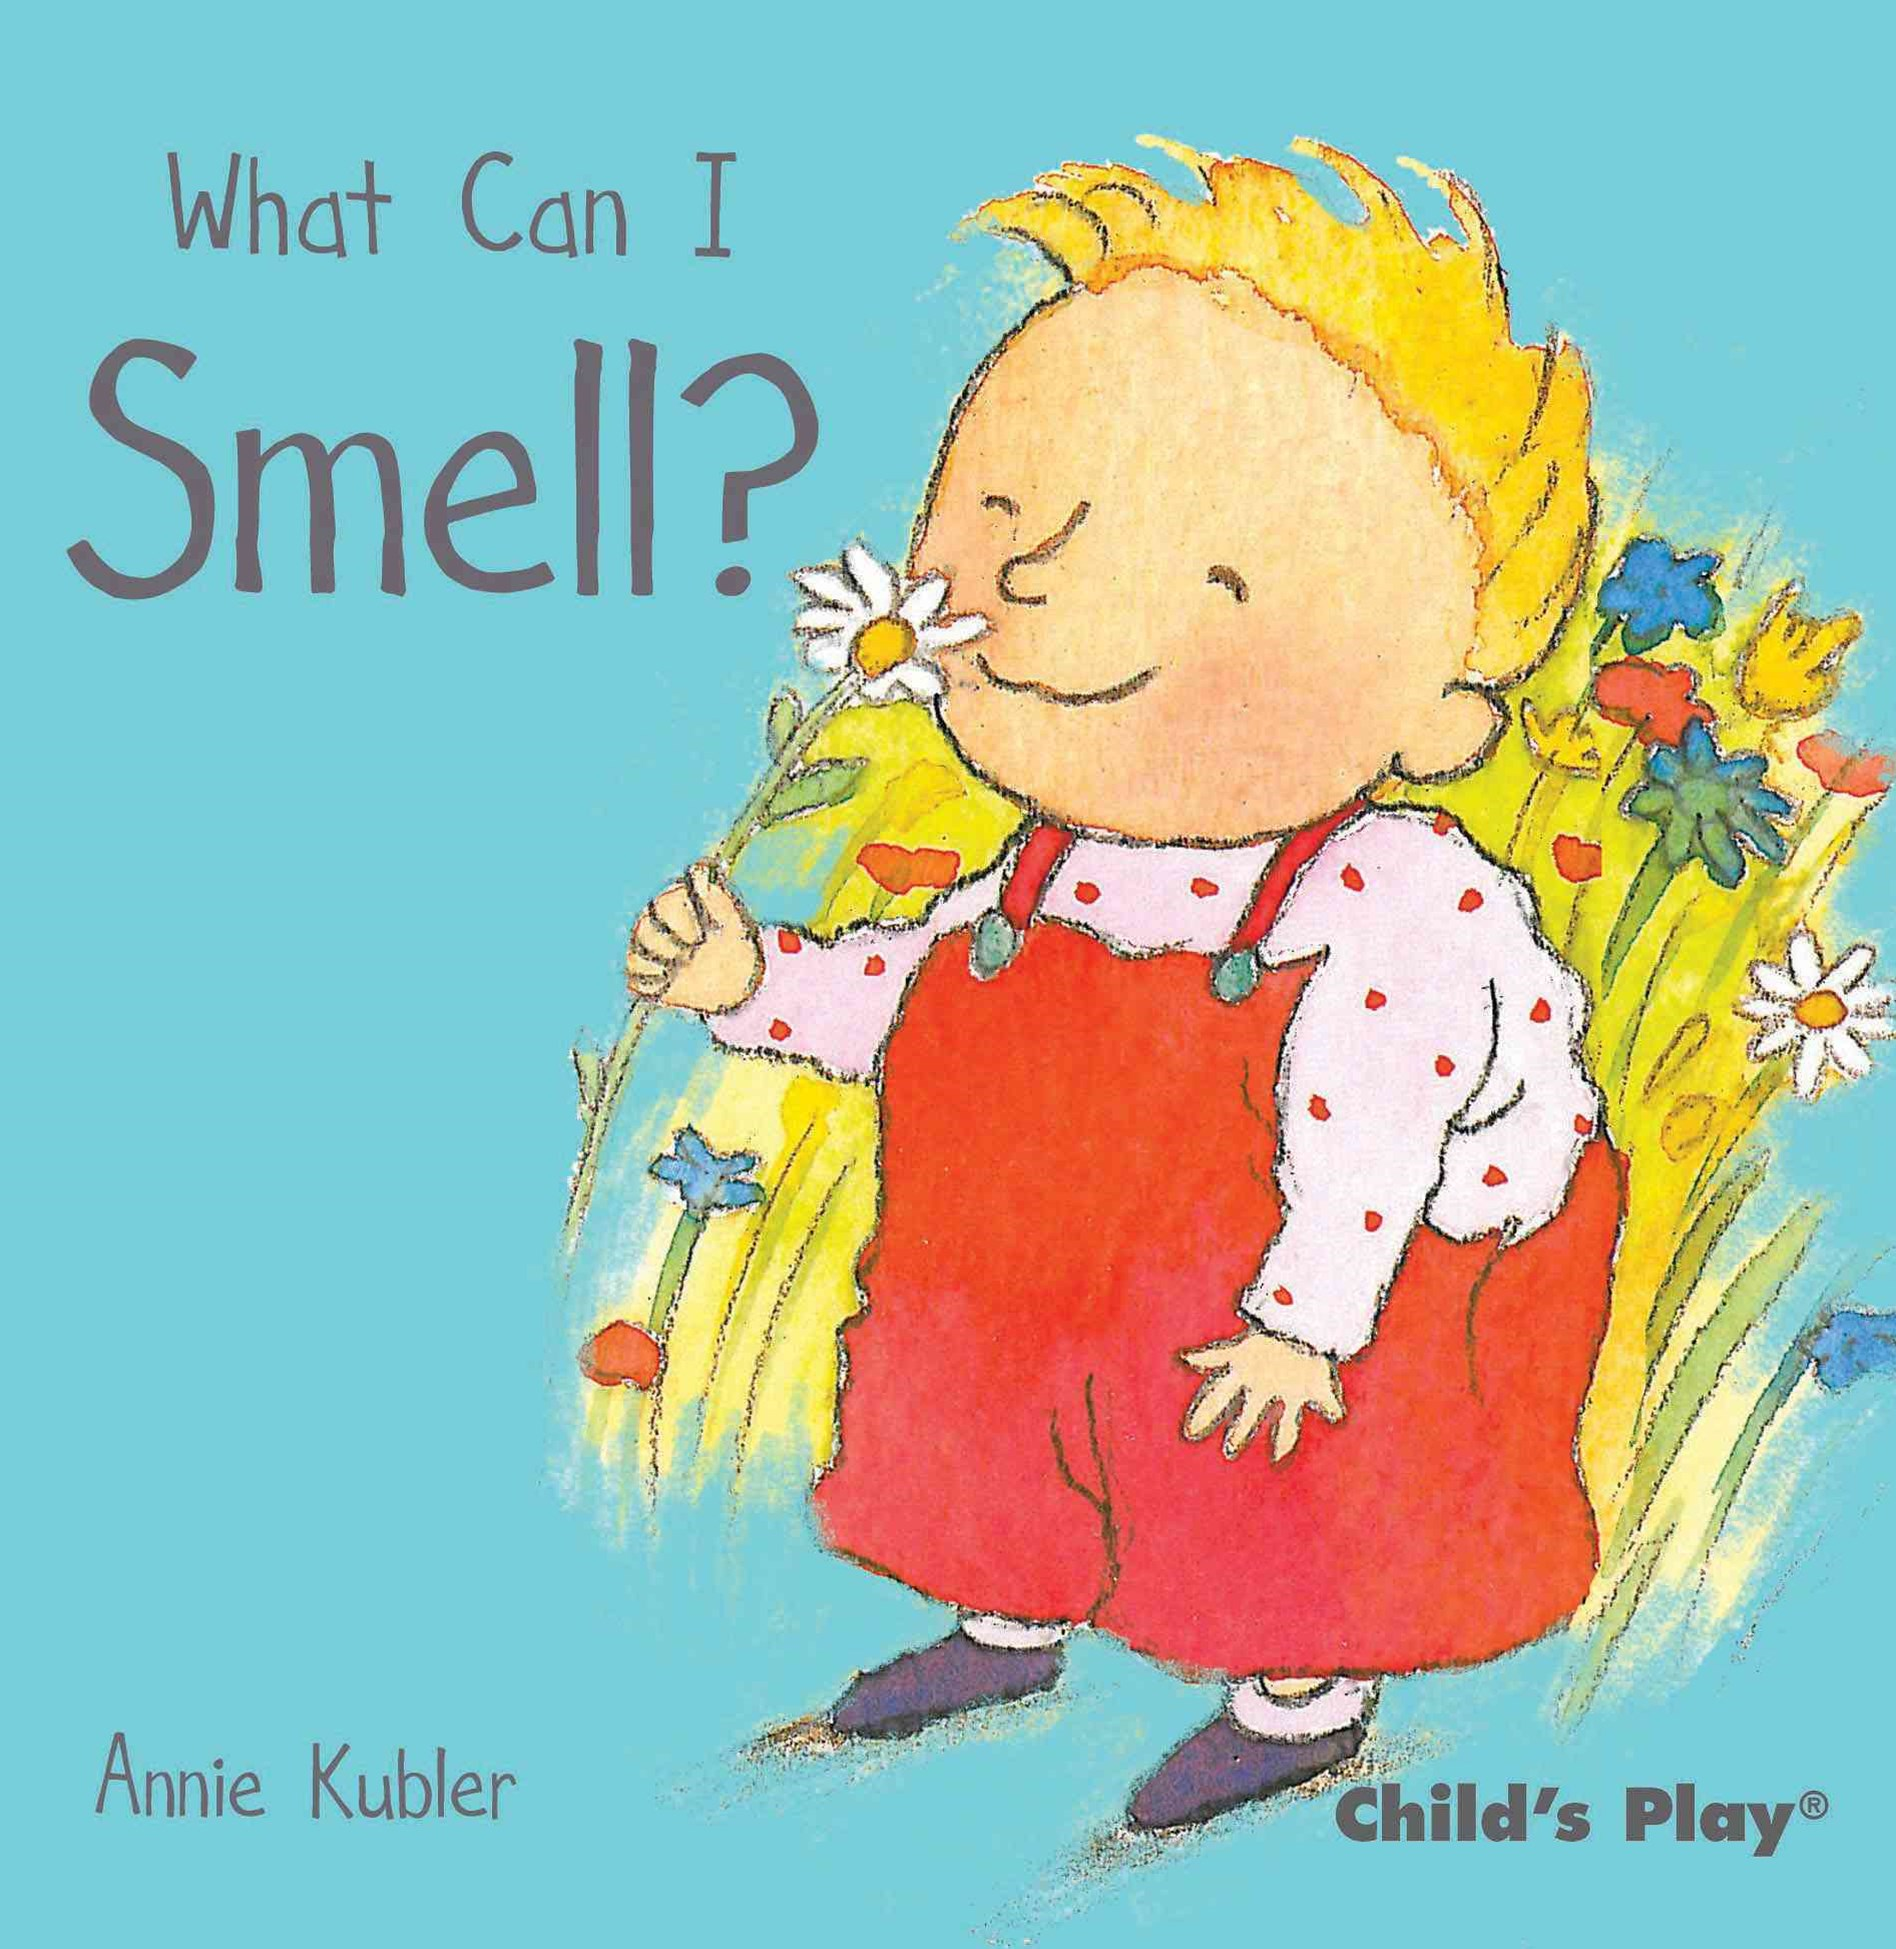 What Can I Smell?